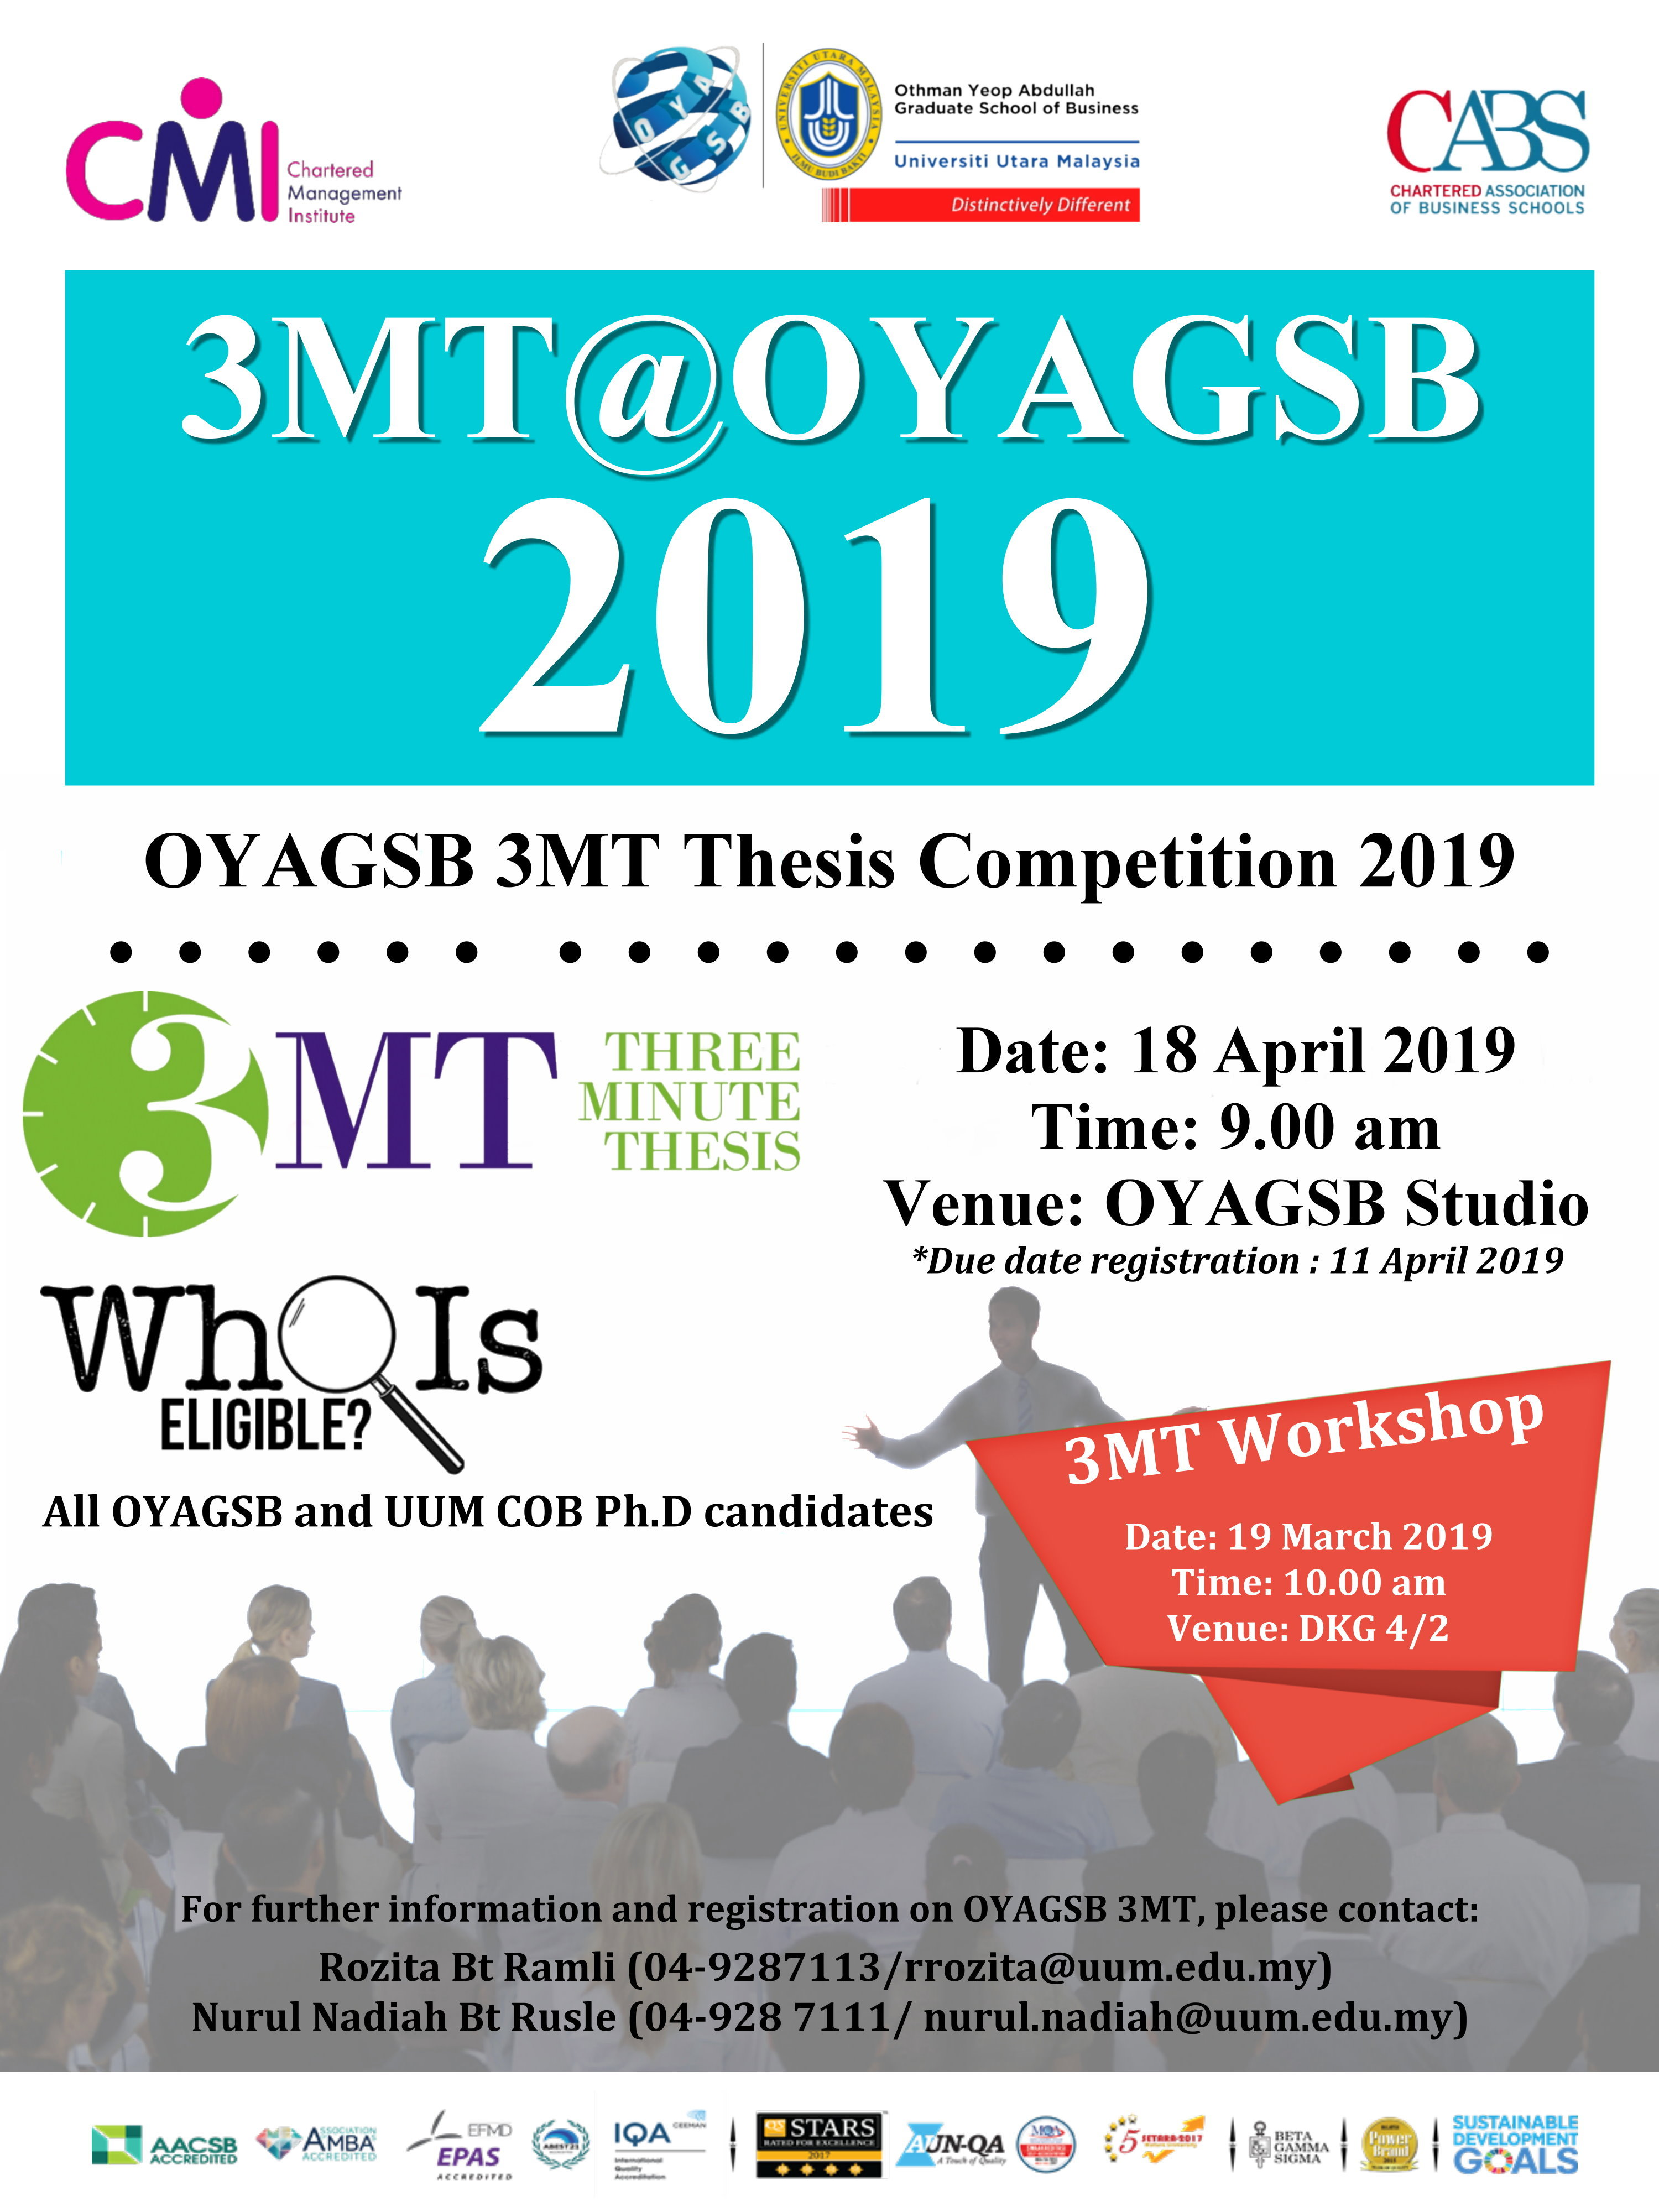 OYAGSB 3MT THESIS COMPETITION 2019